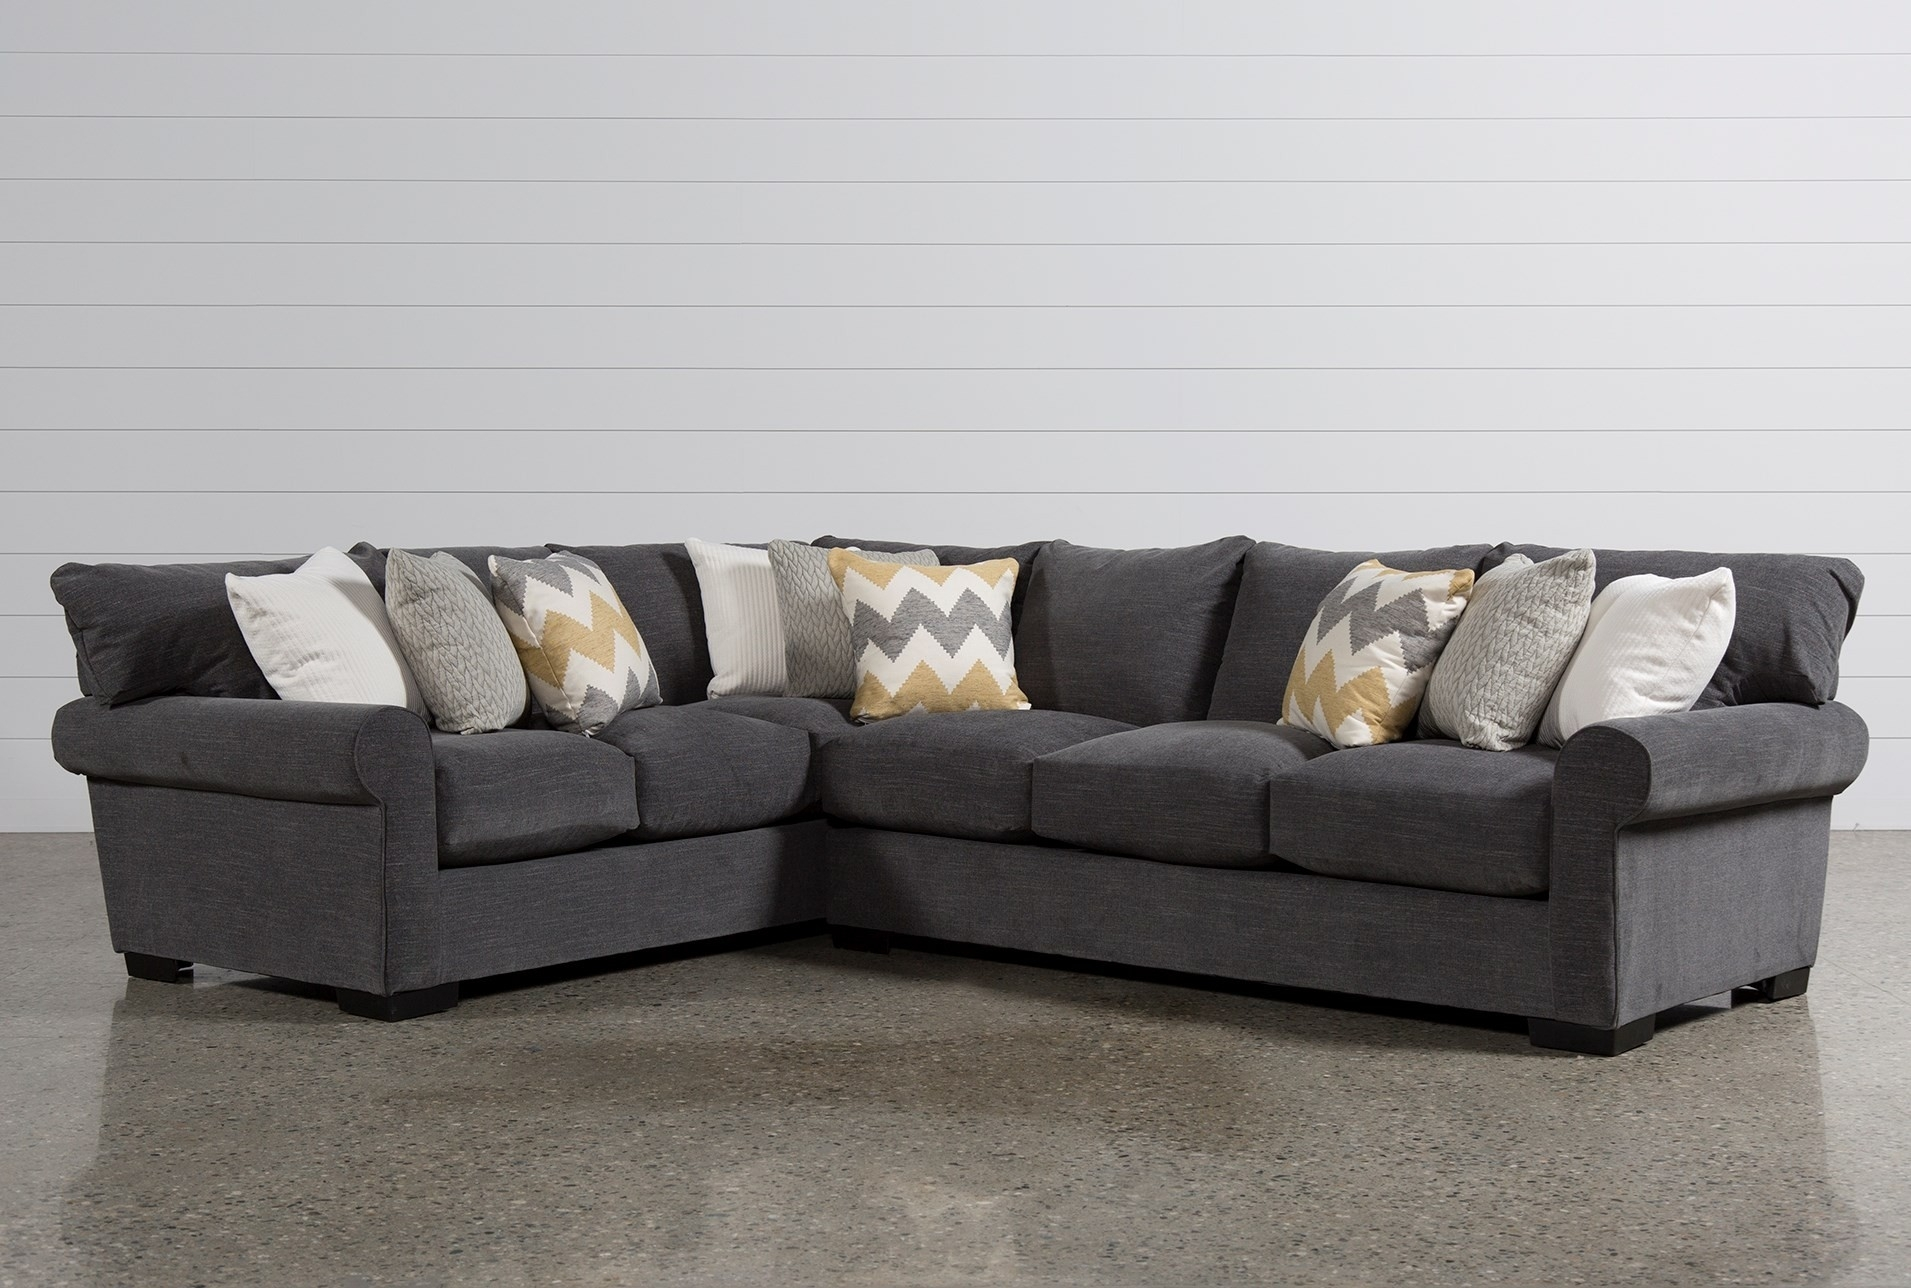 Living Spaces Sectional - Implantologiabogota.co in Cosmos Grey 2 Piece Sectionals With Raf Chaise (Image 17 of 30)